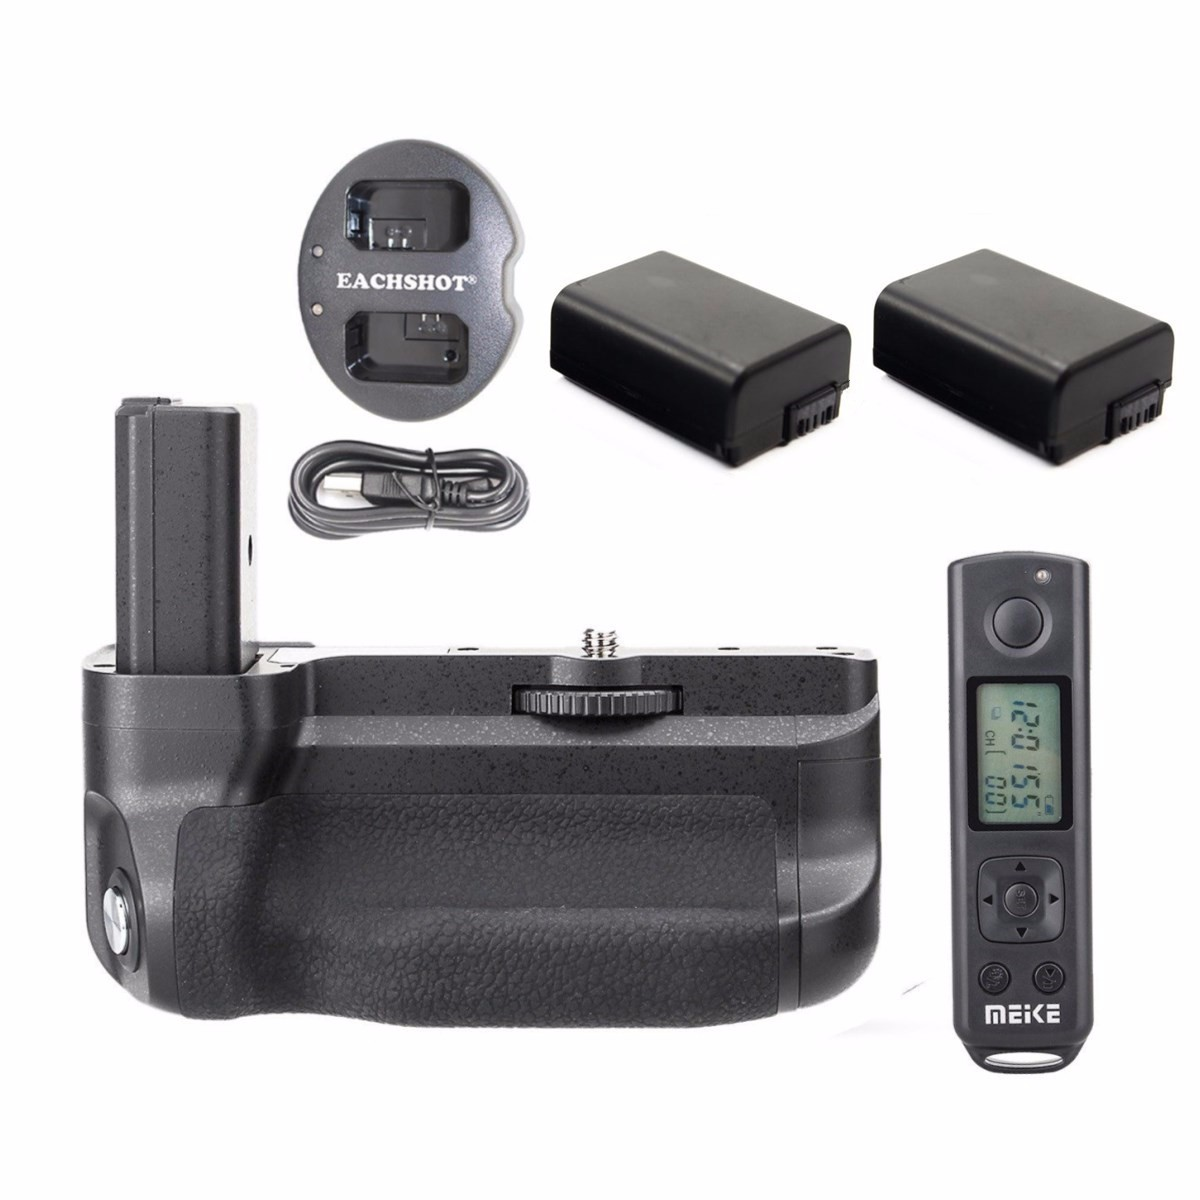 Meike MK-A6300 Pro 2.4G Wireless Control Battery Grip For Sony A6300 + 2* NP-FW50 batteries + dual charger meike mk ar7 built in 2 4g wireless control battery grip for sony a7 a7r a7s